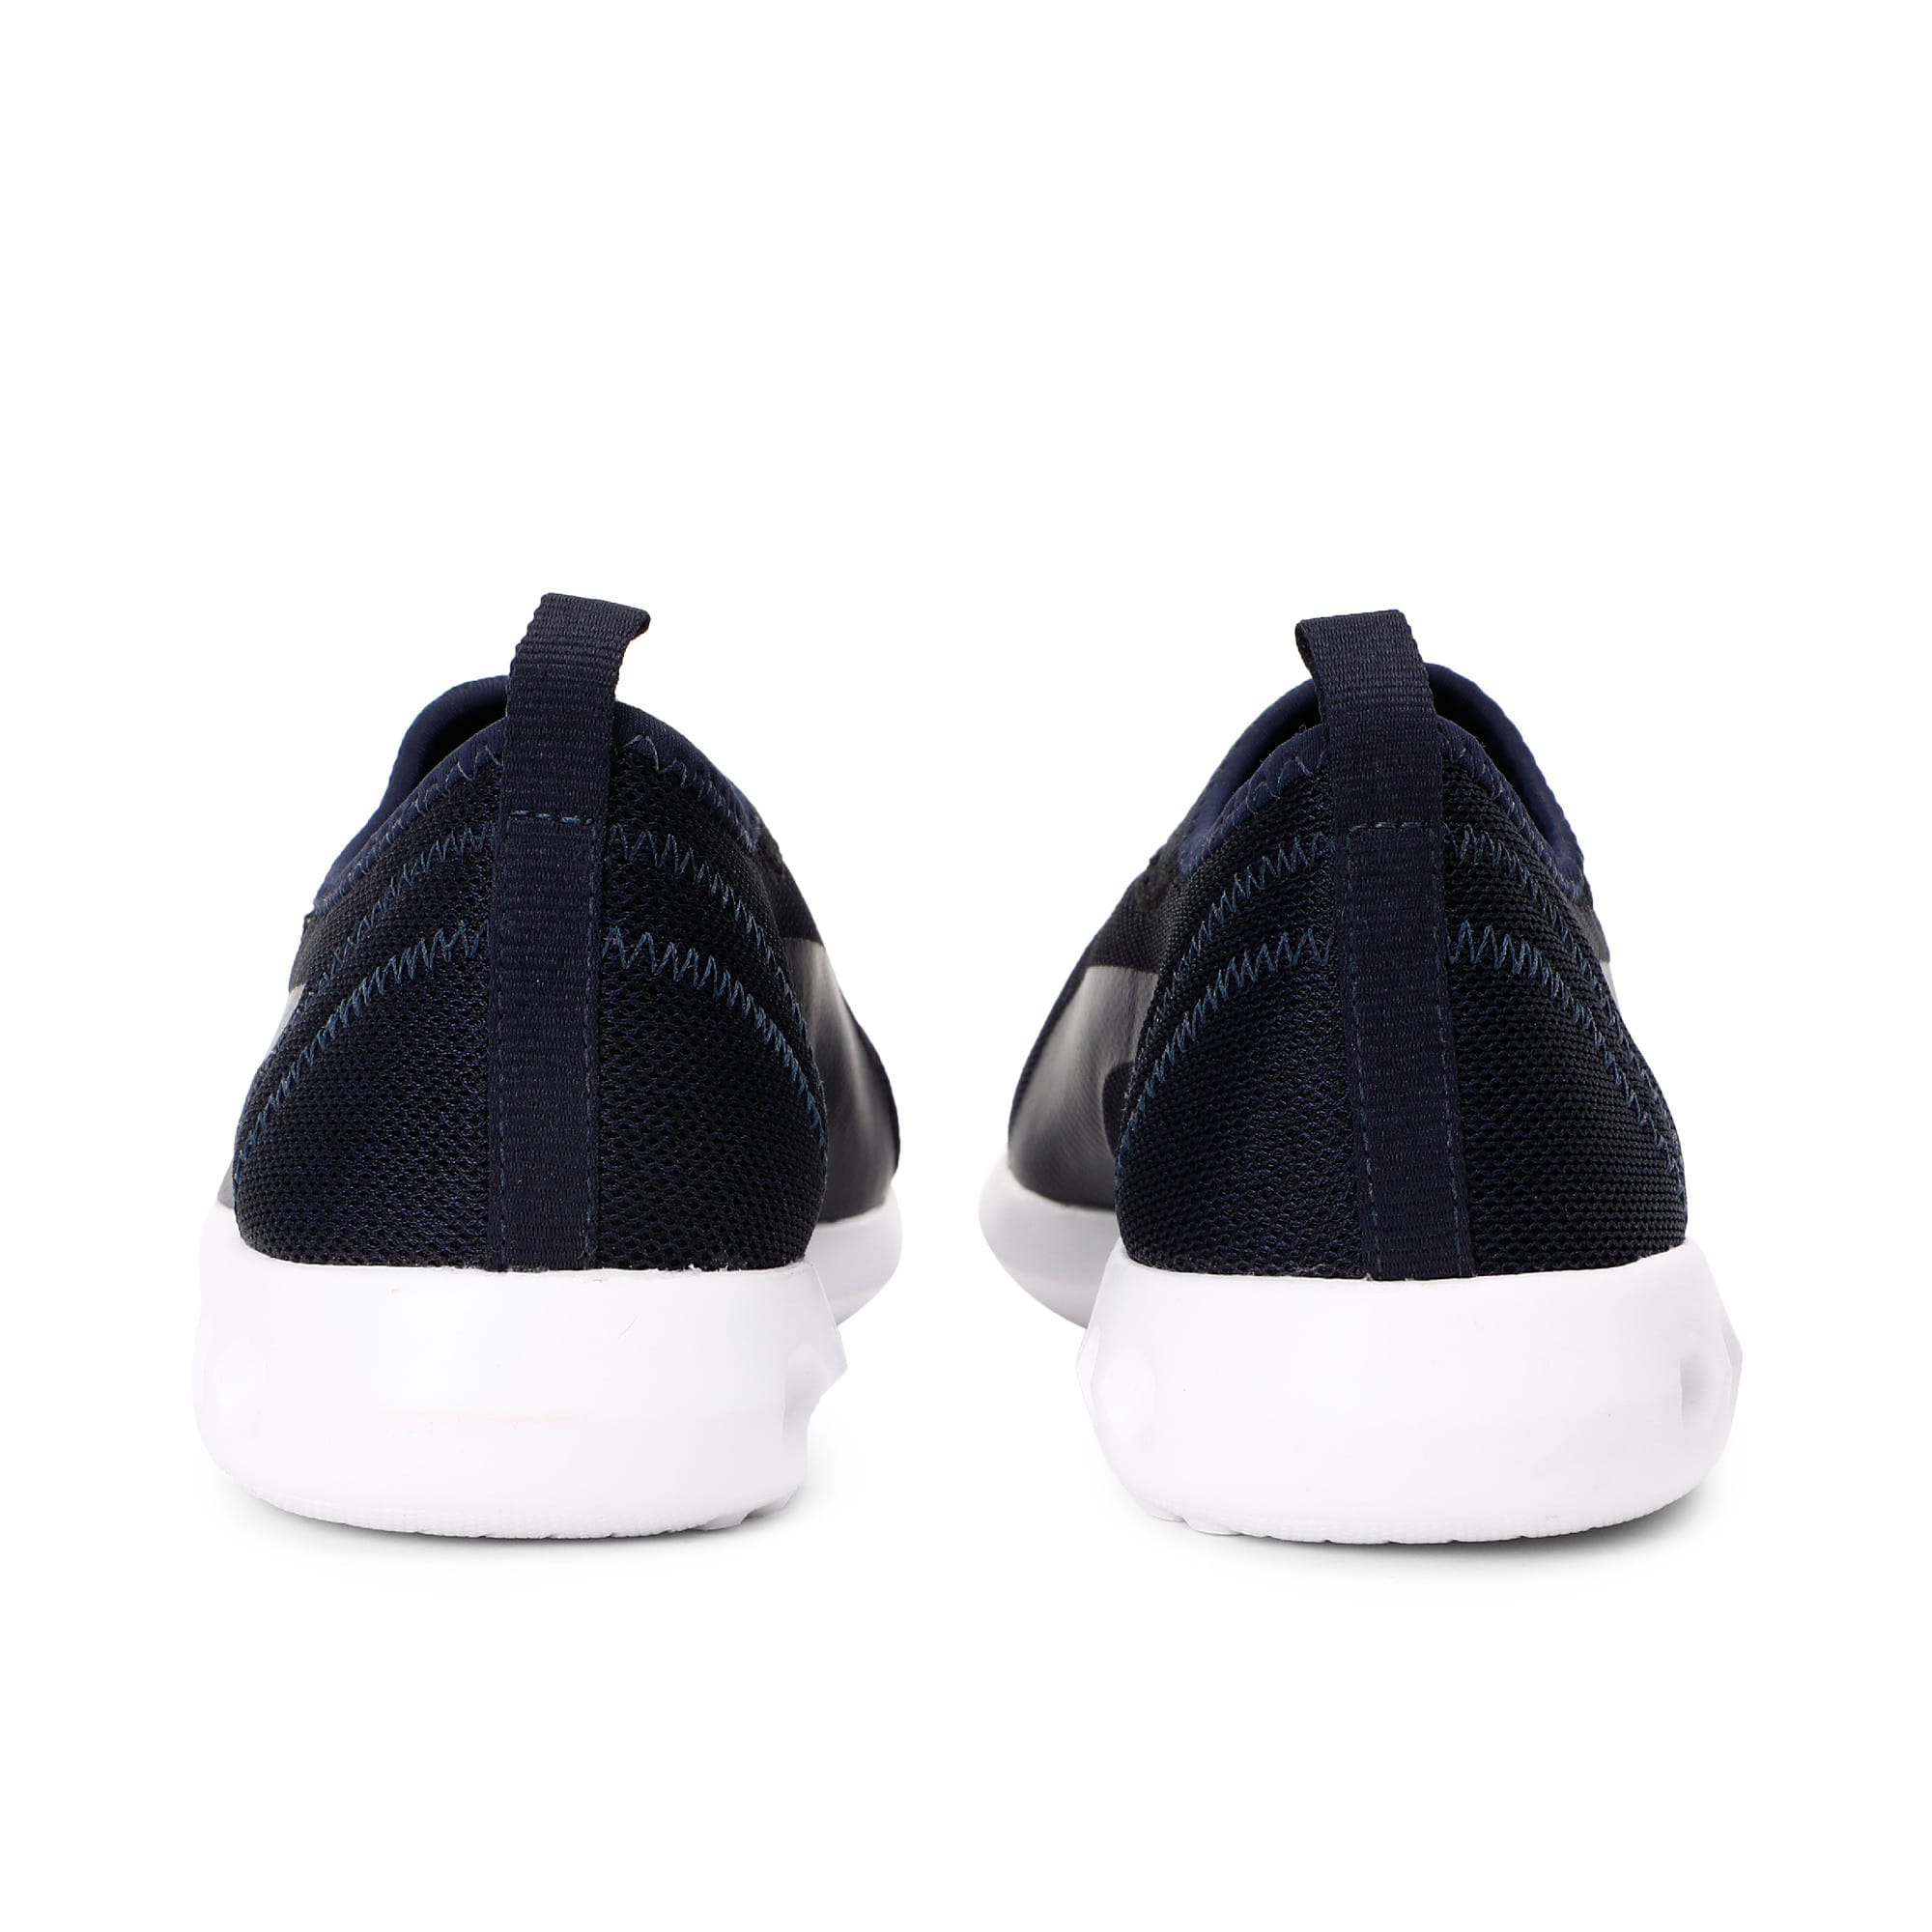 Thumbnail 2 of Concave 3 MU Slip-On IDP Puma Black-Silv, Peacoat-Silver, medium-IND